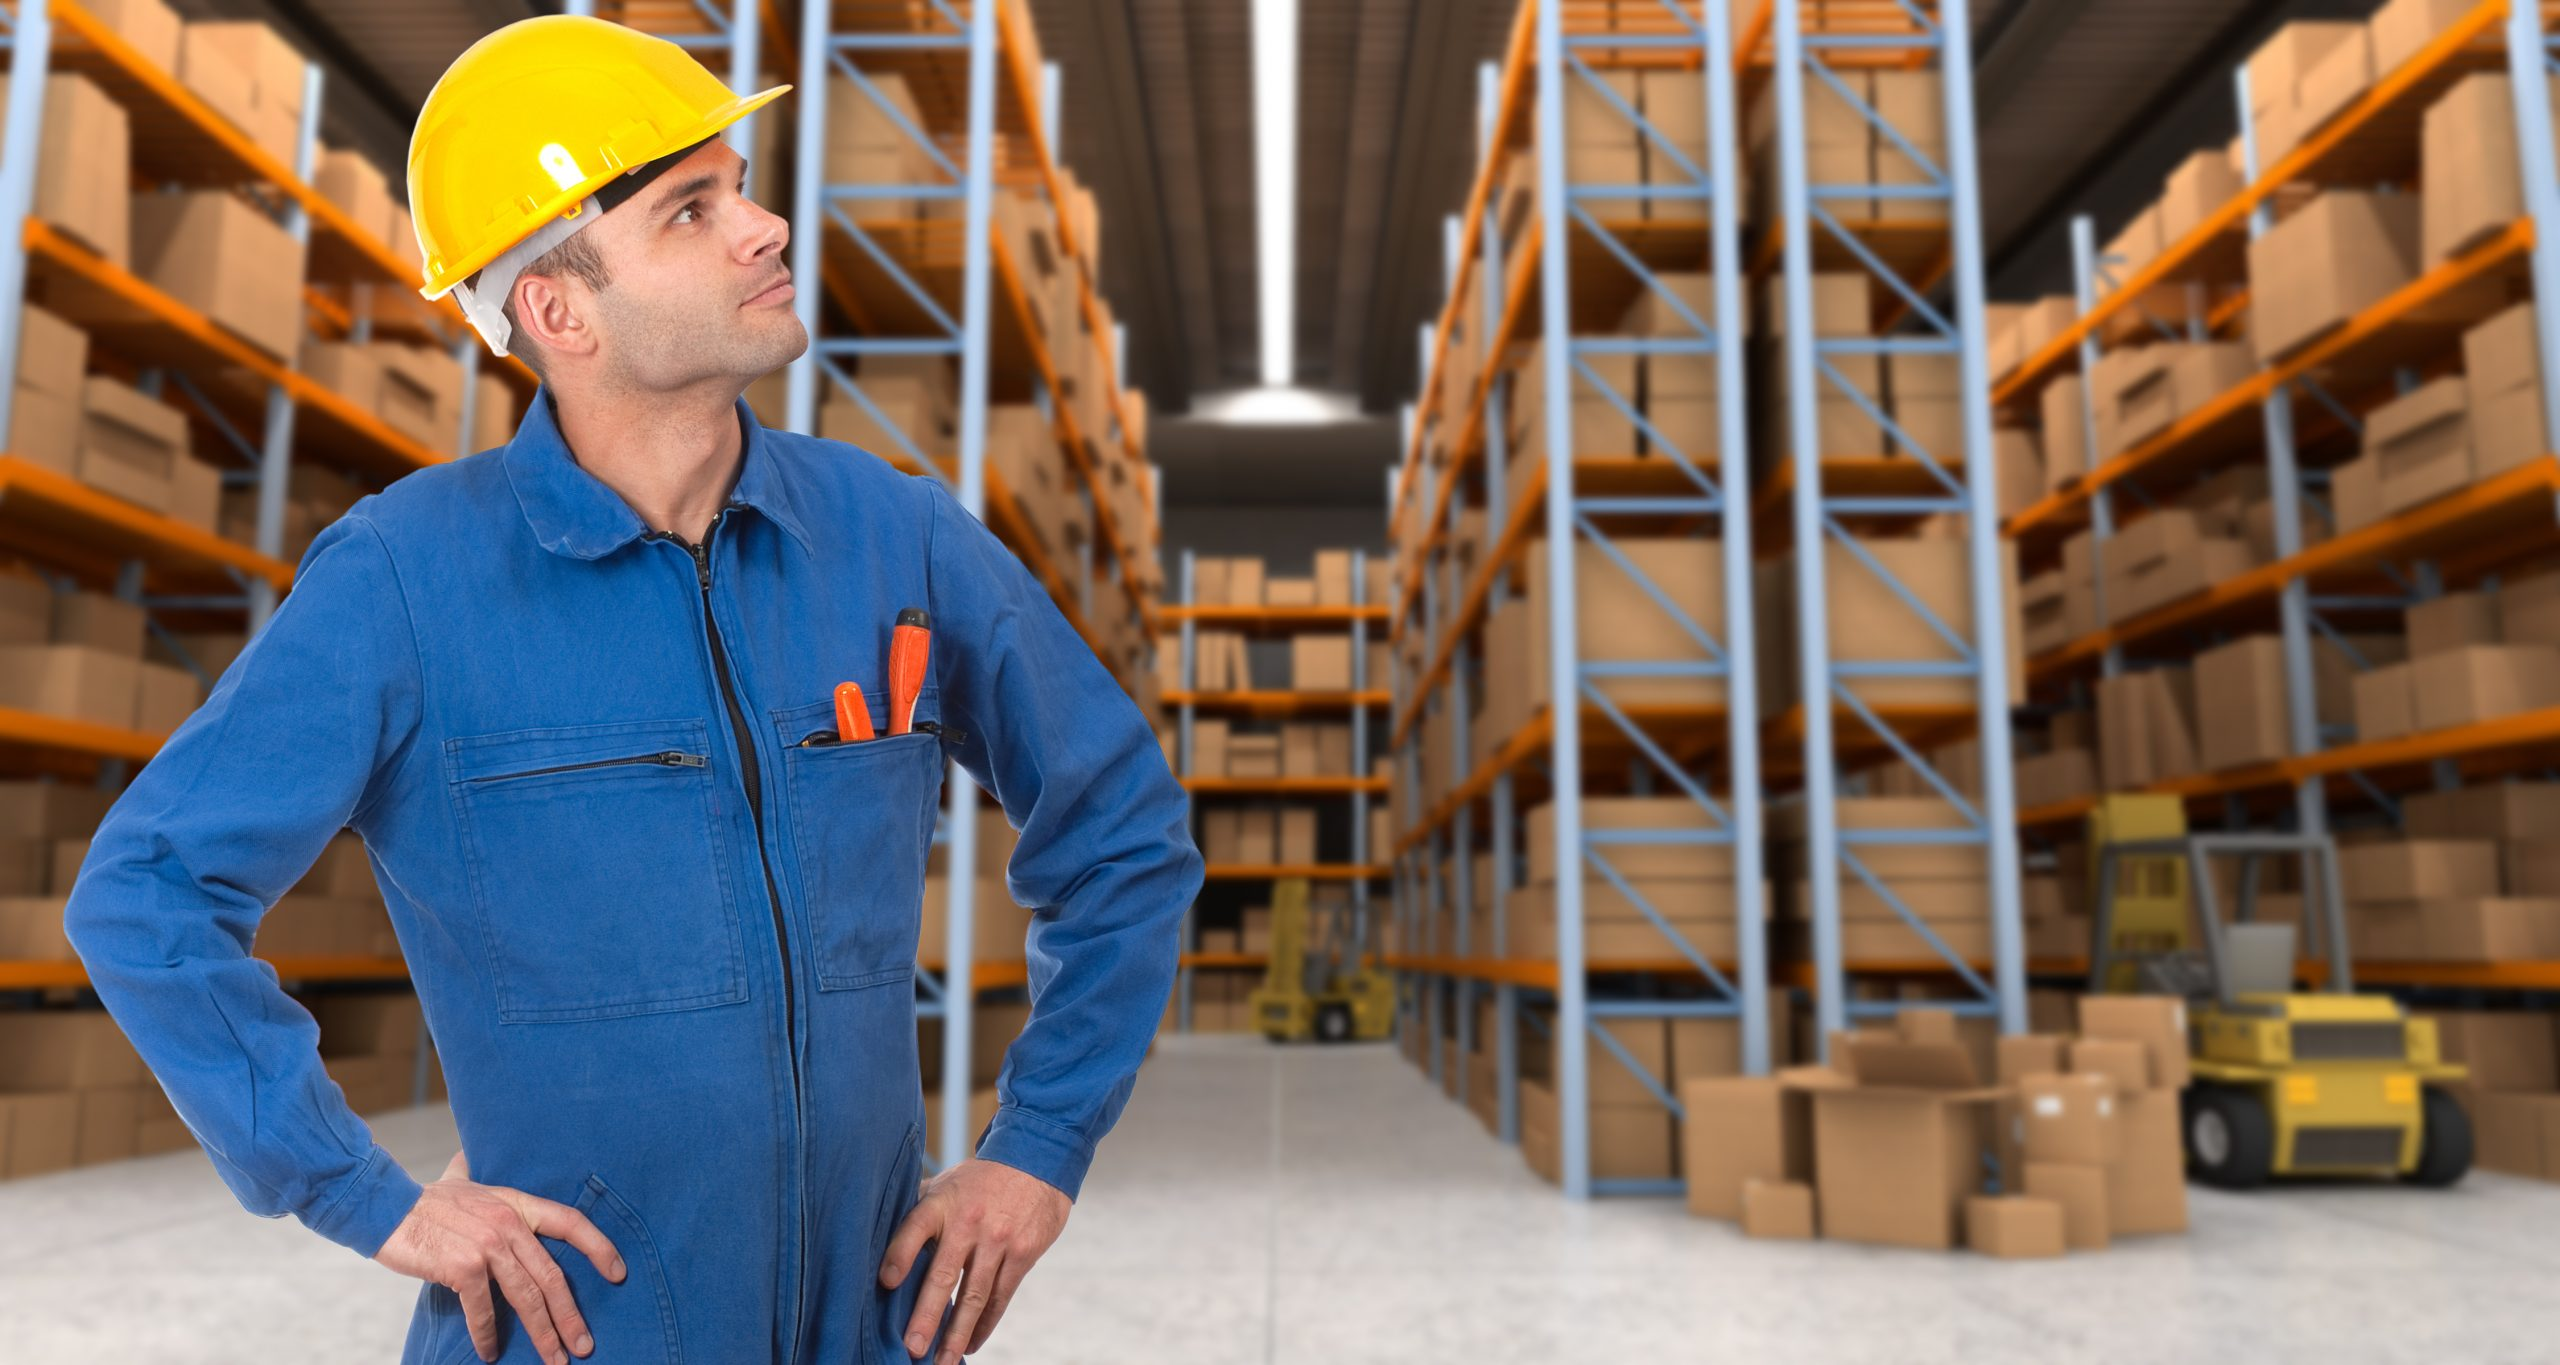 Man with helmet and blue overalls in a warehouse with pallet racking system